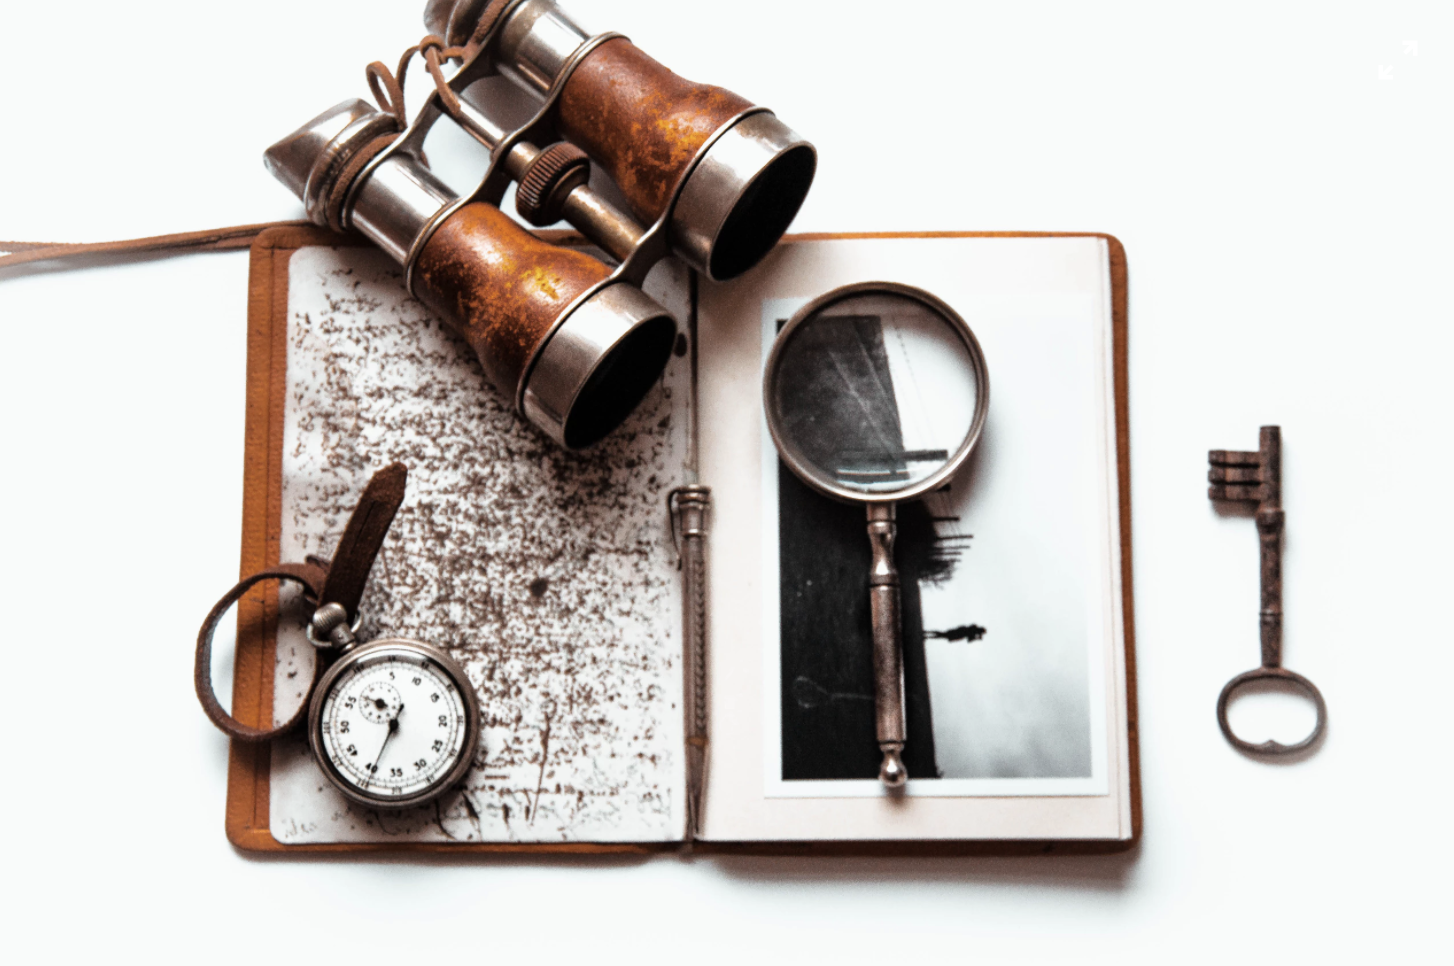 binoculars, a compass, a magnifying glass, and old key and a notebook